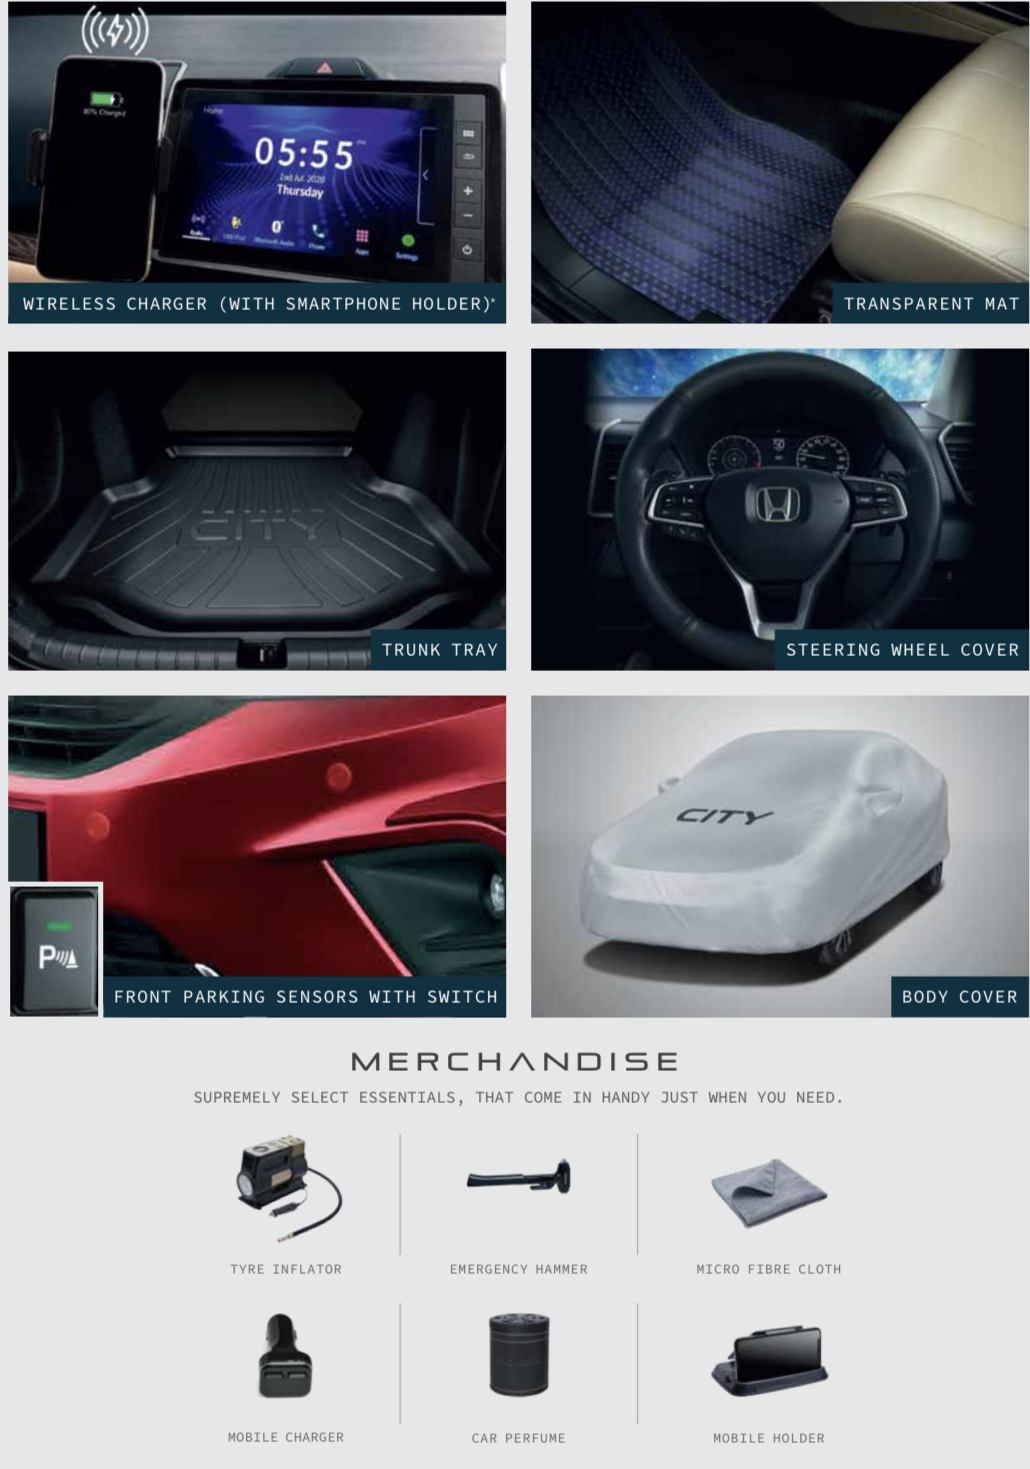 2020 Honda City Merchandise